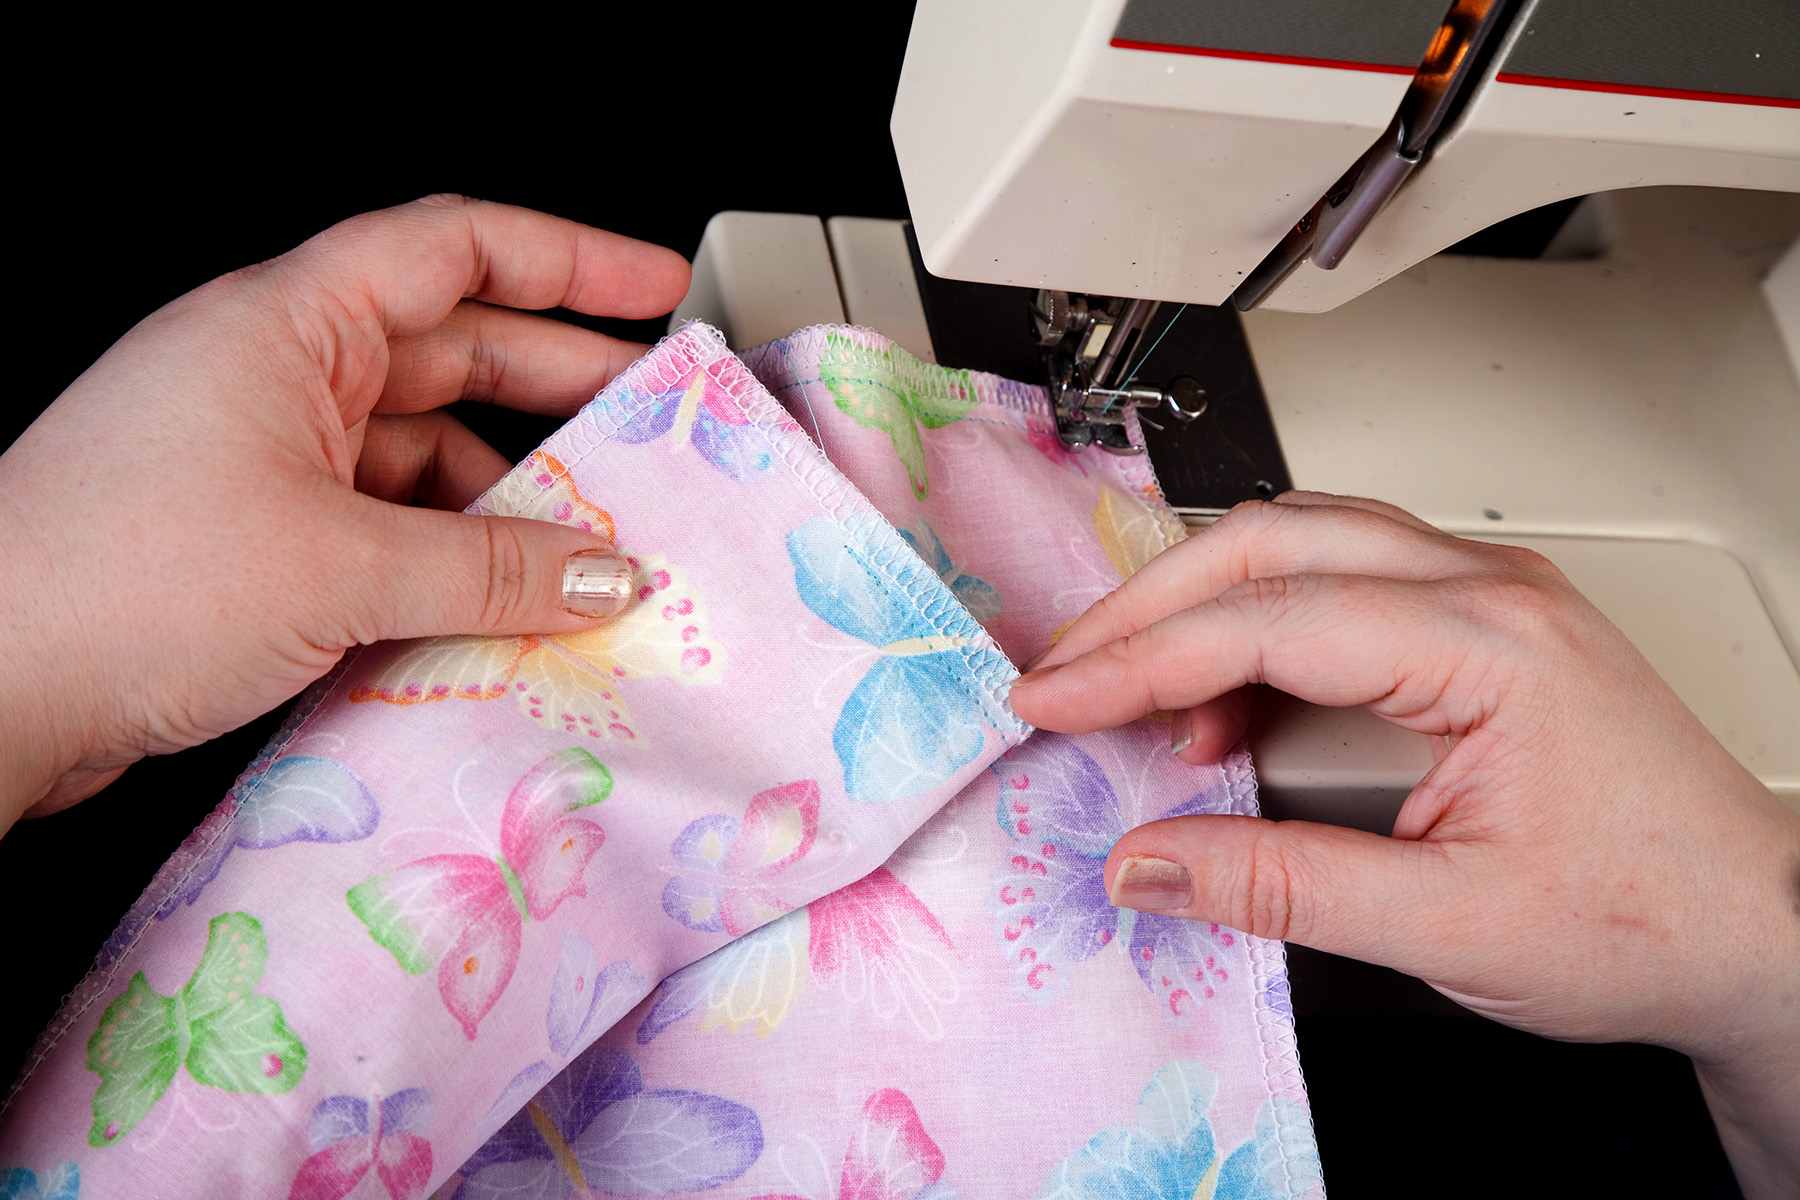 A pair of hands shows a seam on light purple butterfly print fabric.